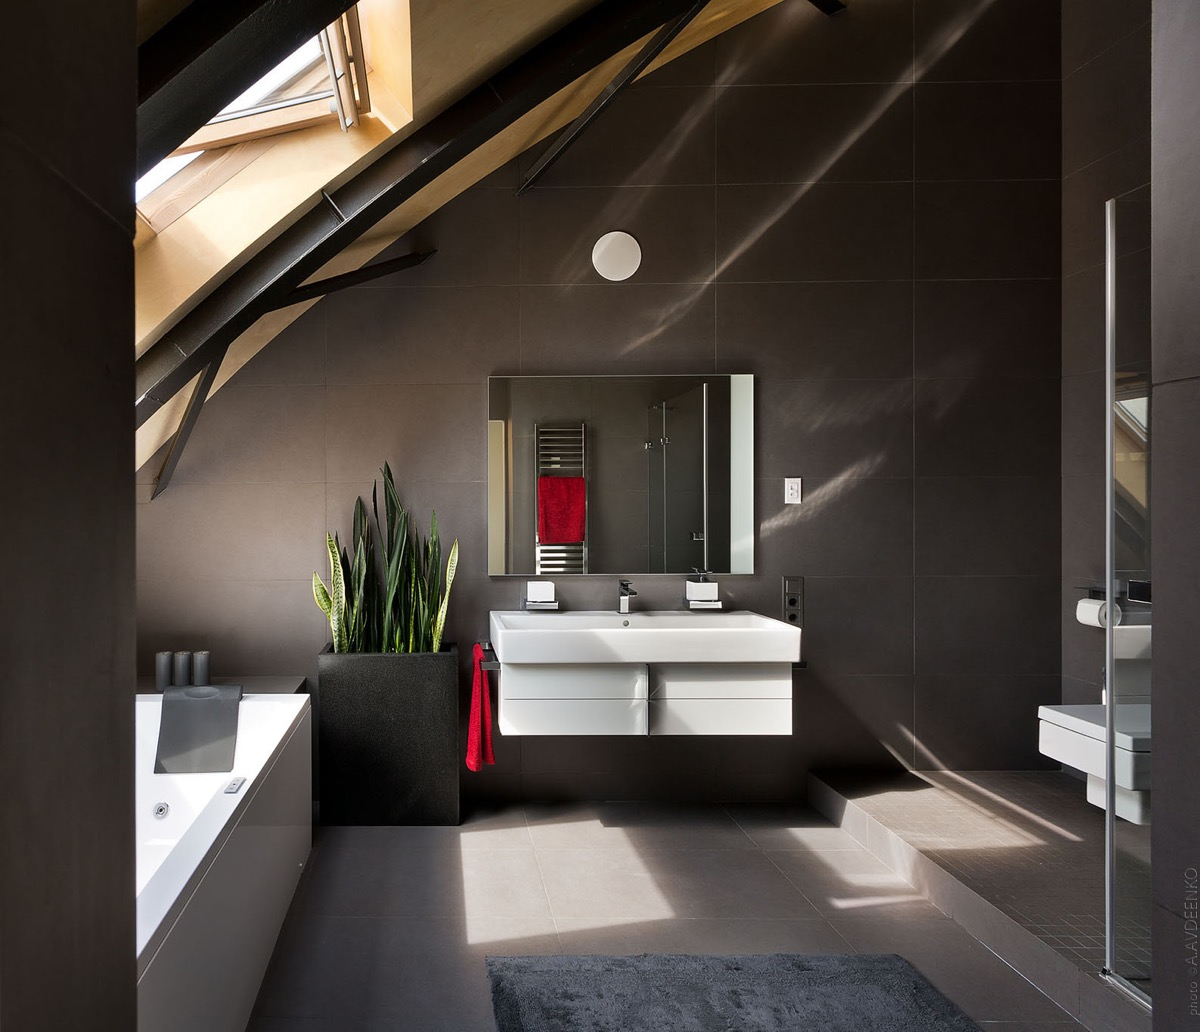 40 Modern Bathroom Vanities That Overflow With Style images 15